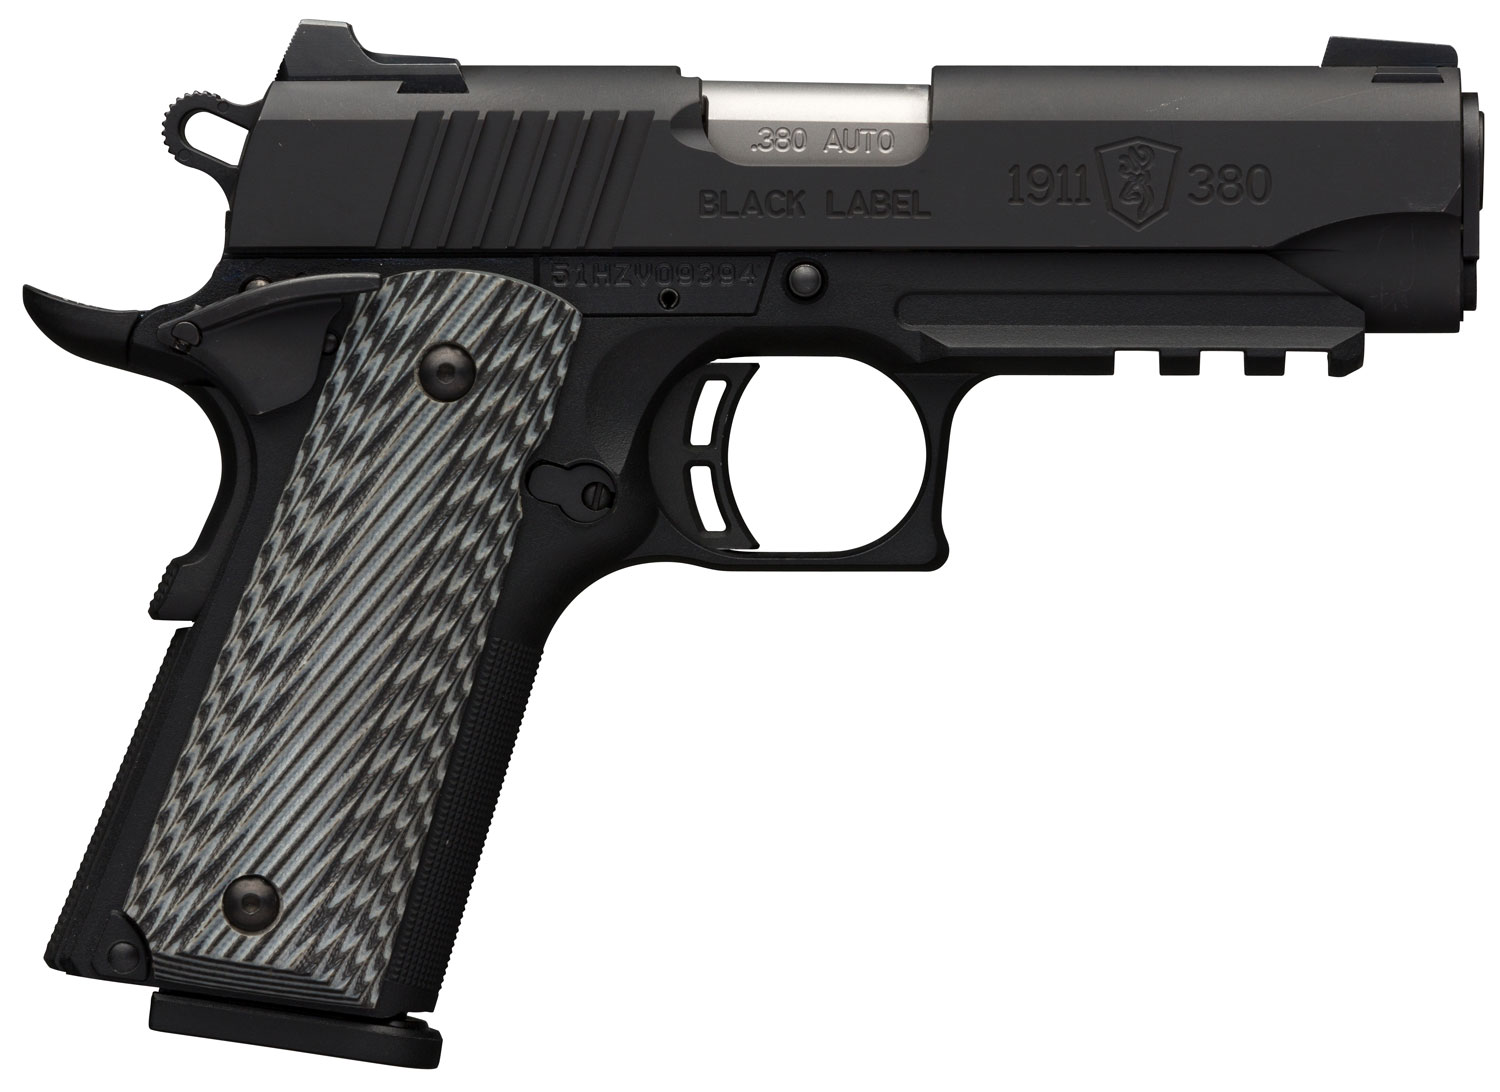 Browning 051909492 1911-380 Black Label Pro Compact with Rail Single 380 Automatic Colt Pistol (ACP) 3.625